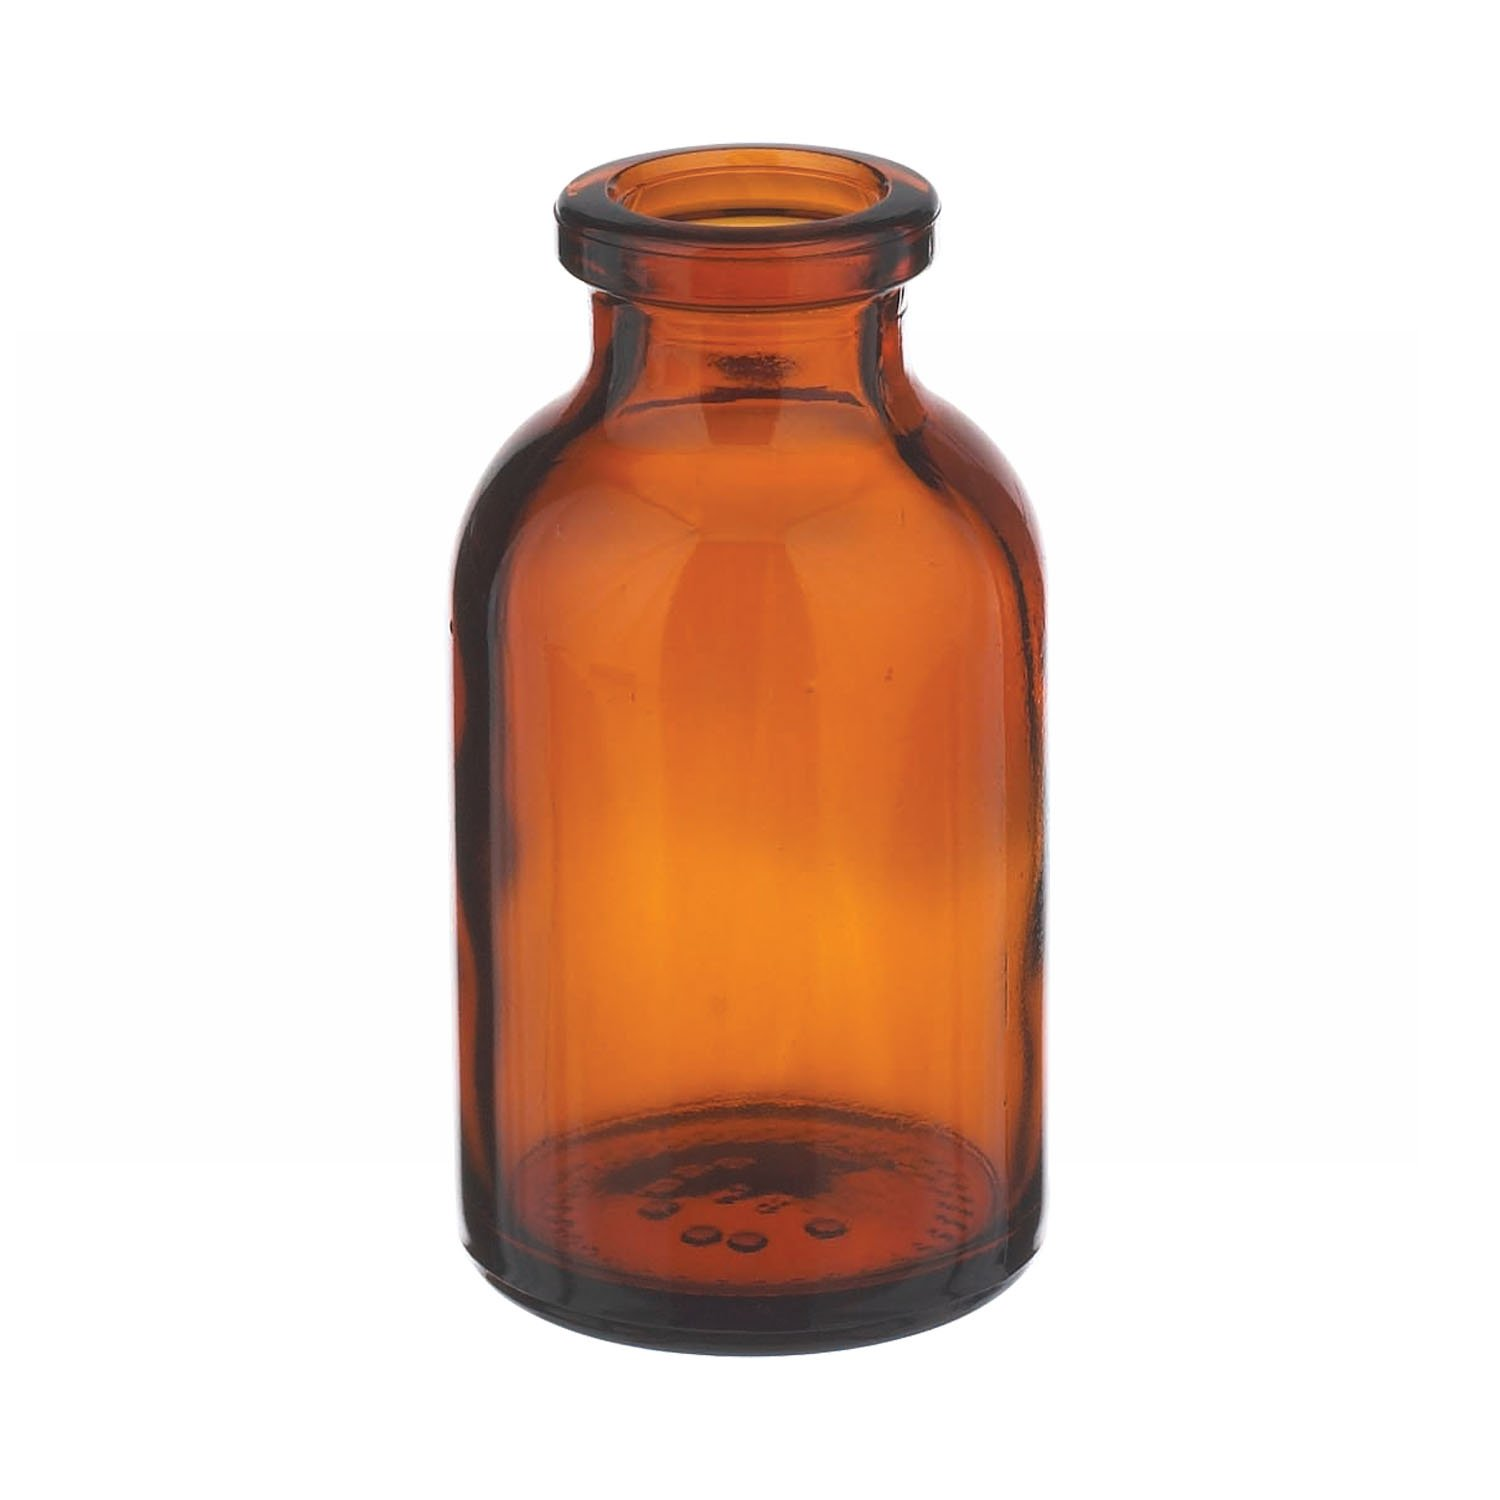 Wheaton 223761 Serum Bottle 10mL, Amber Borosilicate Glass, Mouth Dimensions: 13mm ID x 20mm OD, Bottle Dimensions: 25mm Diameter x 54mm Height (Case of 288)